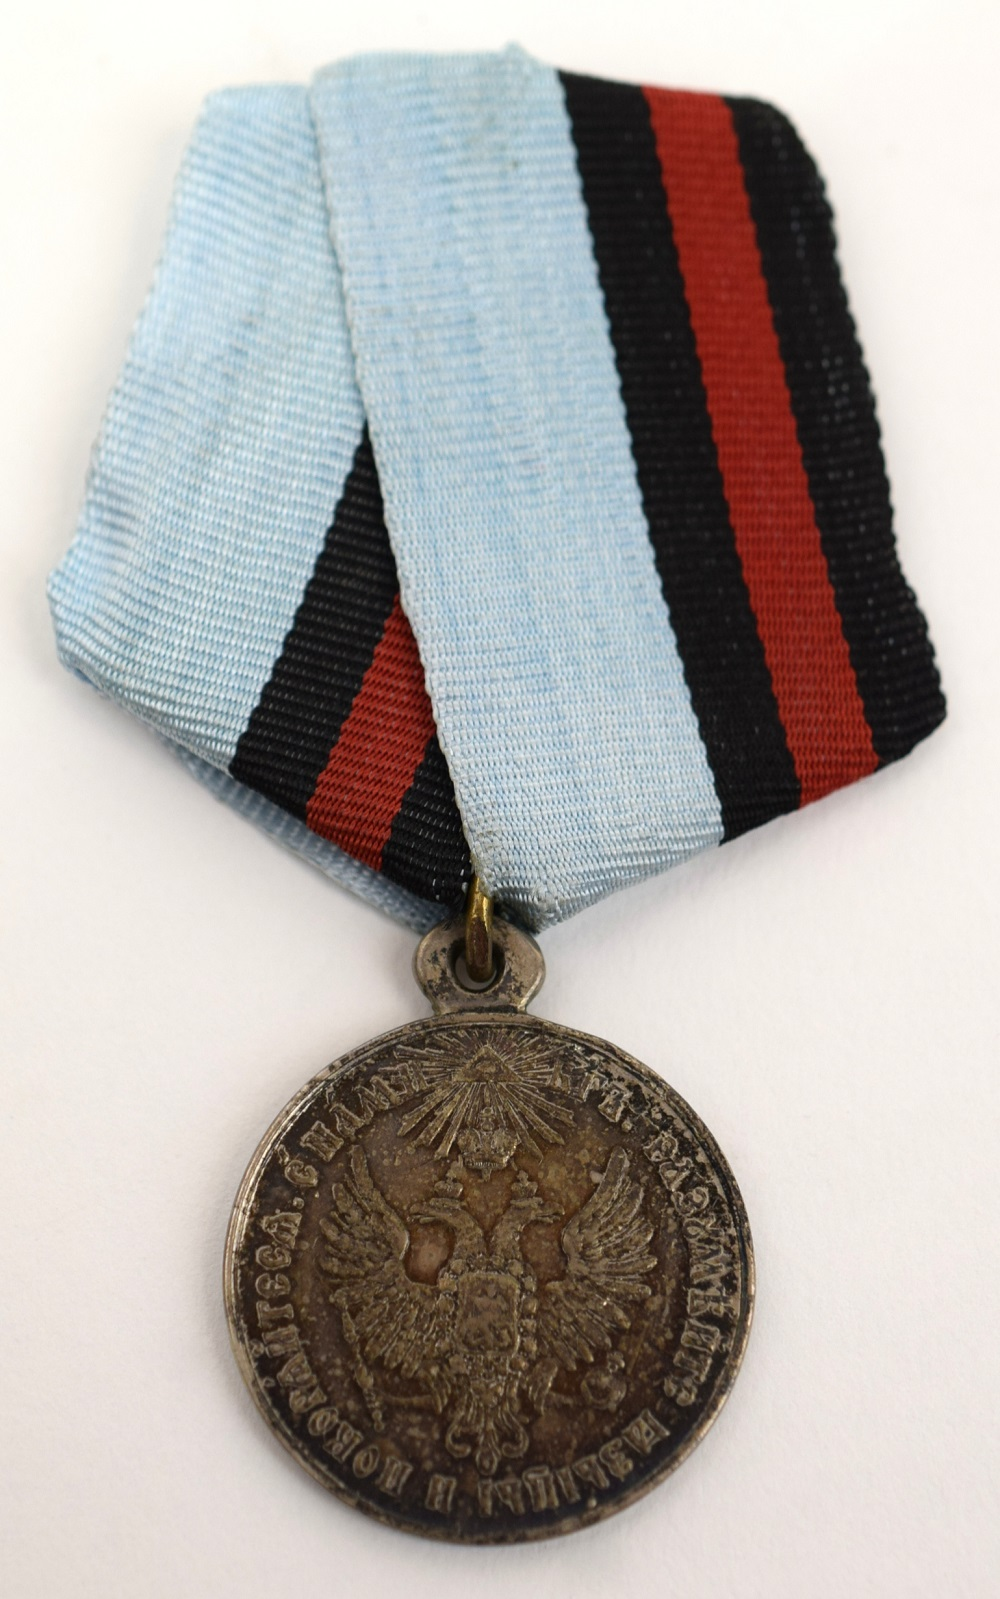 Award Medal for Participation of Hungary and Transylvania, 1849